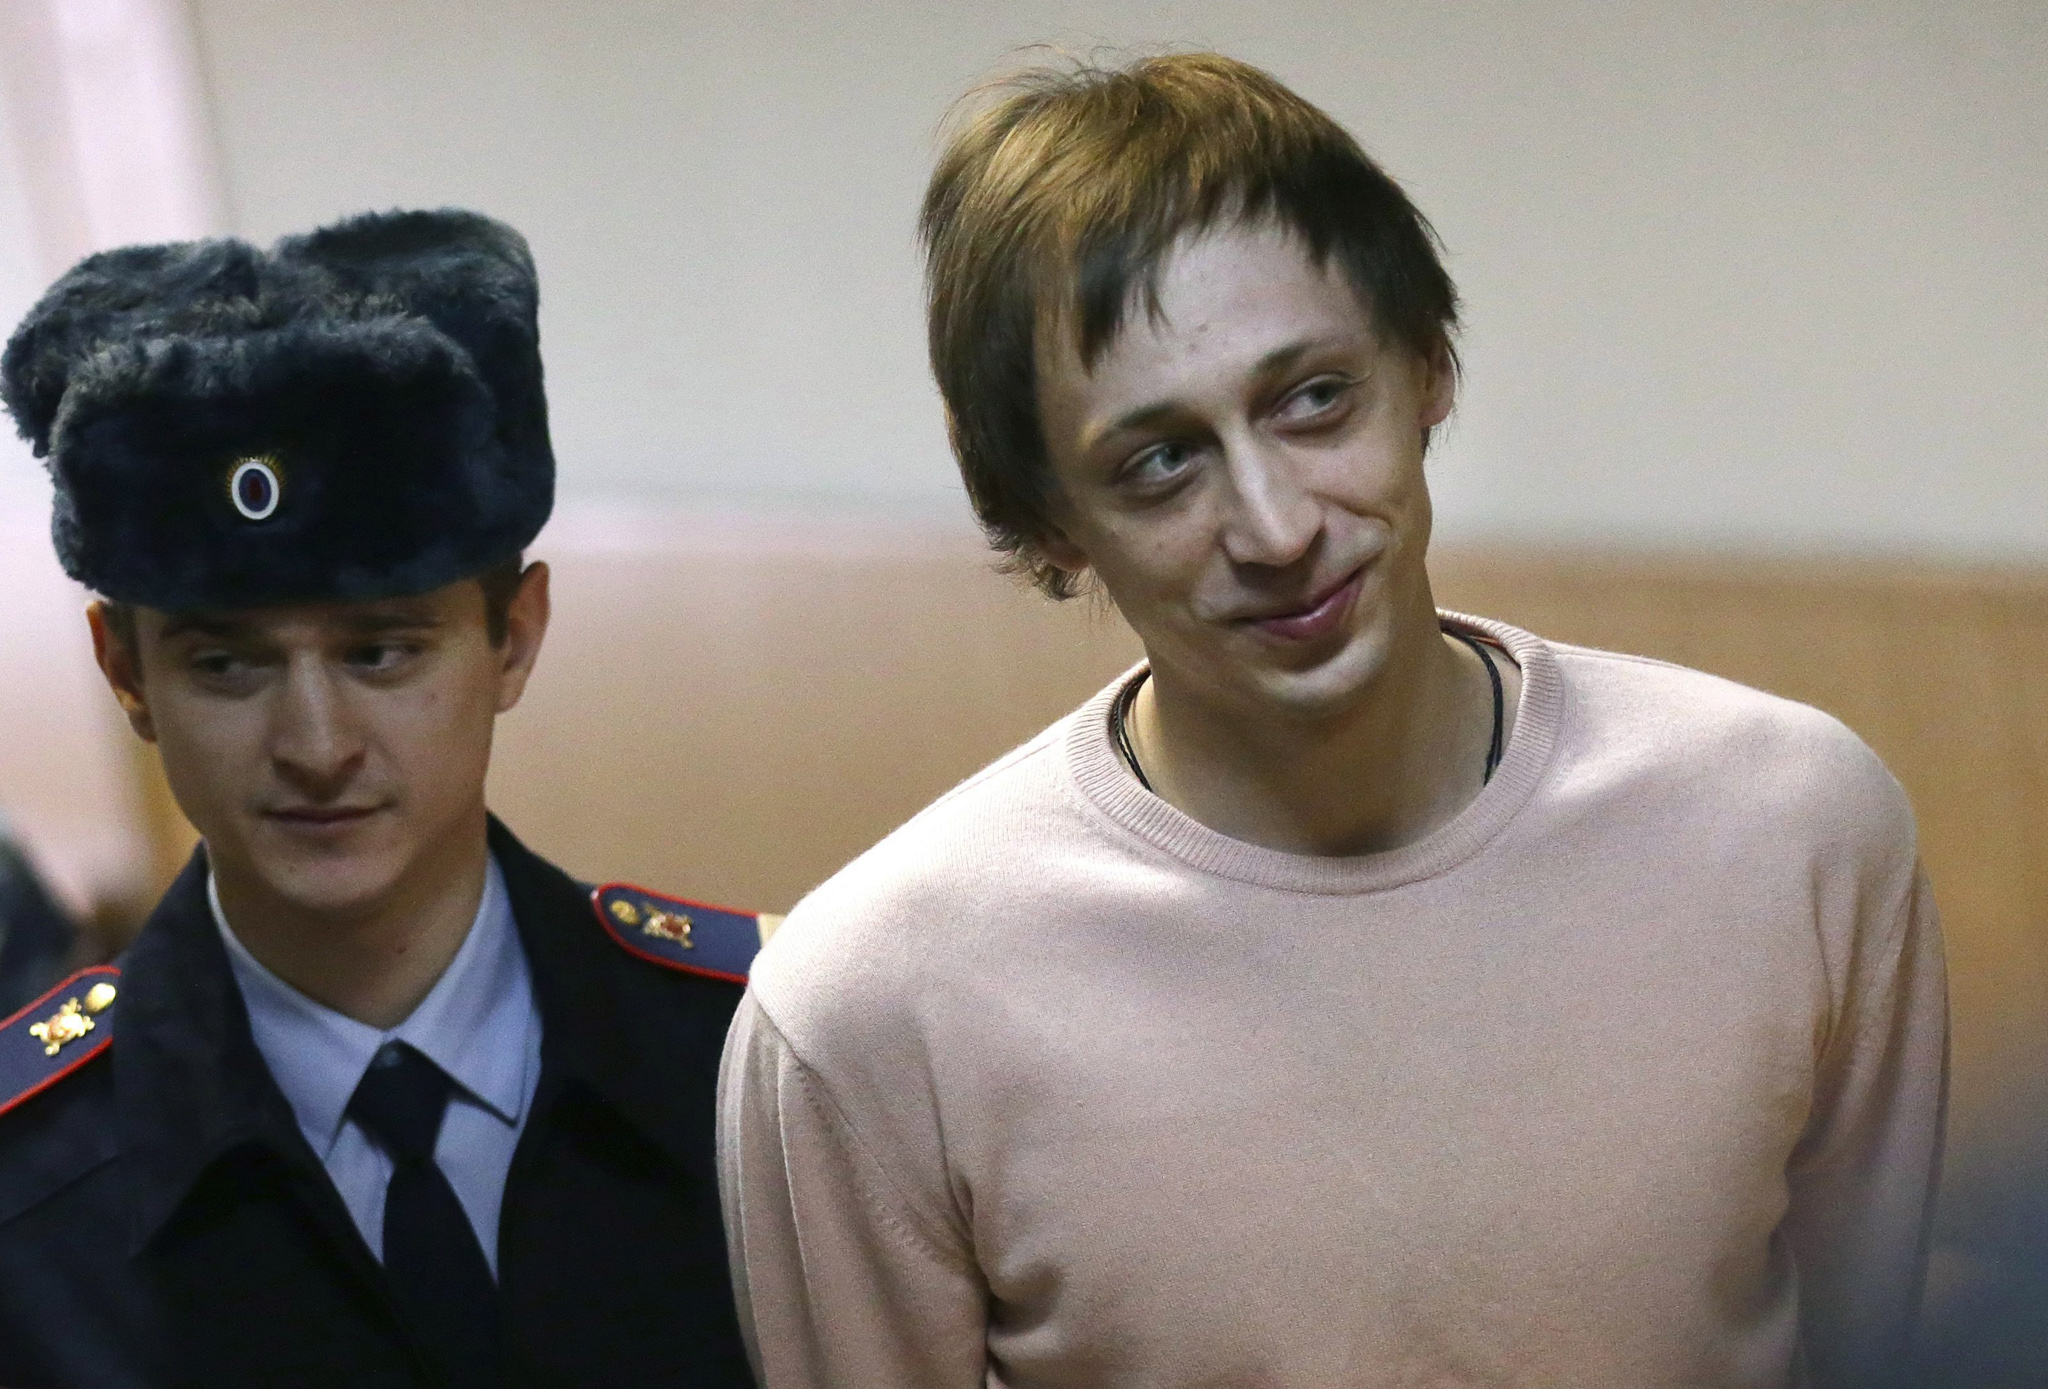 Former Bolshoi ballet dancer Pavel Dmitrichenko is escorted by policemen for sentencing at Meshansky district court in Moscow, Russia. Bolshoi dancer Pavel Dmitrichenko was found guilty of masterminding an acid attack on the world-renowned Moscow theatre's artistic director Sergei Filin on 17 January 2012. The attack left Filin with severe burns and nearly blinded.